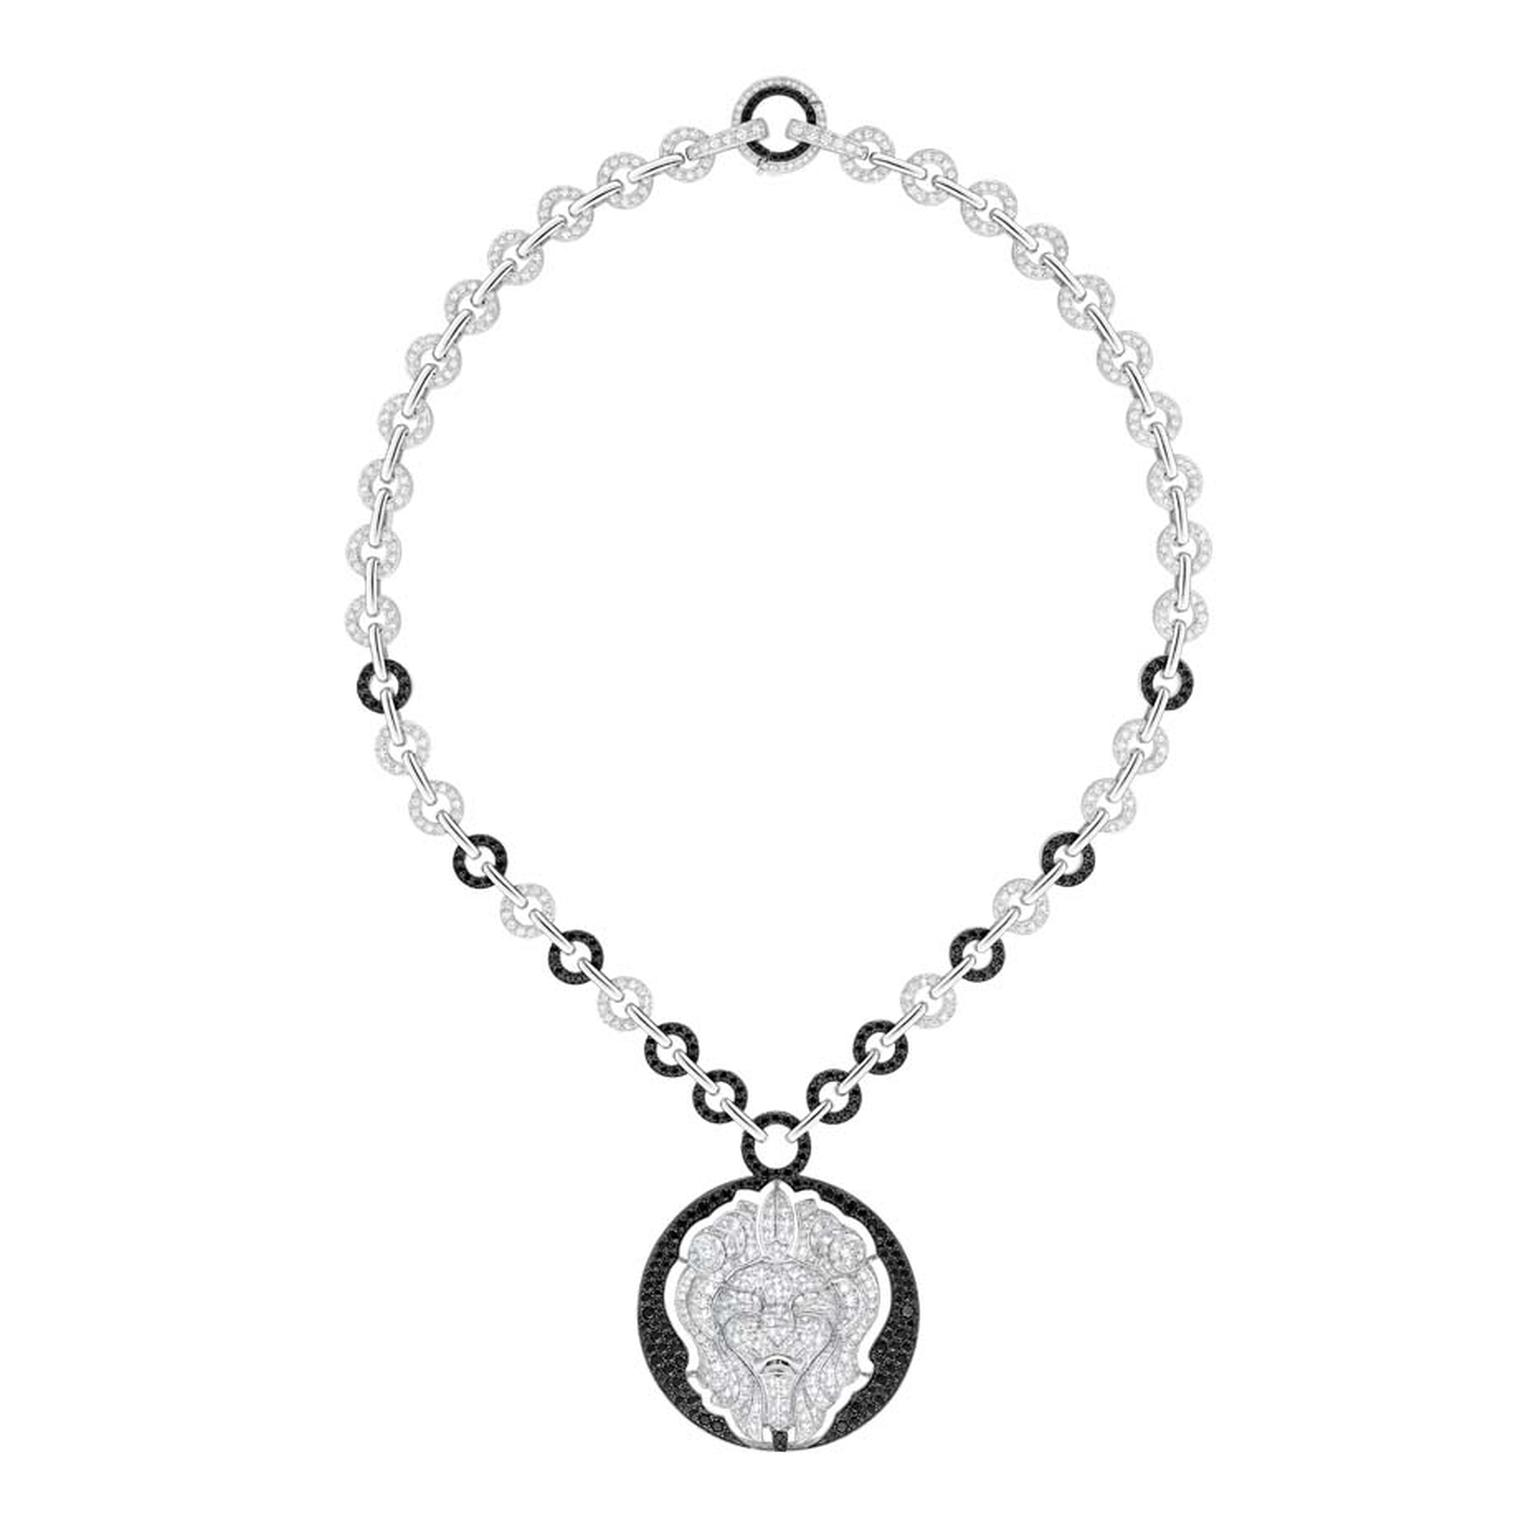 Chanel Lion Talisman necklace in white gold, set with black and white diamonds. From the new Les Intemporels high jewellery collection.